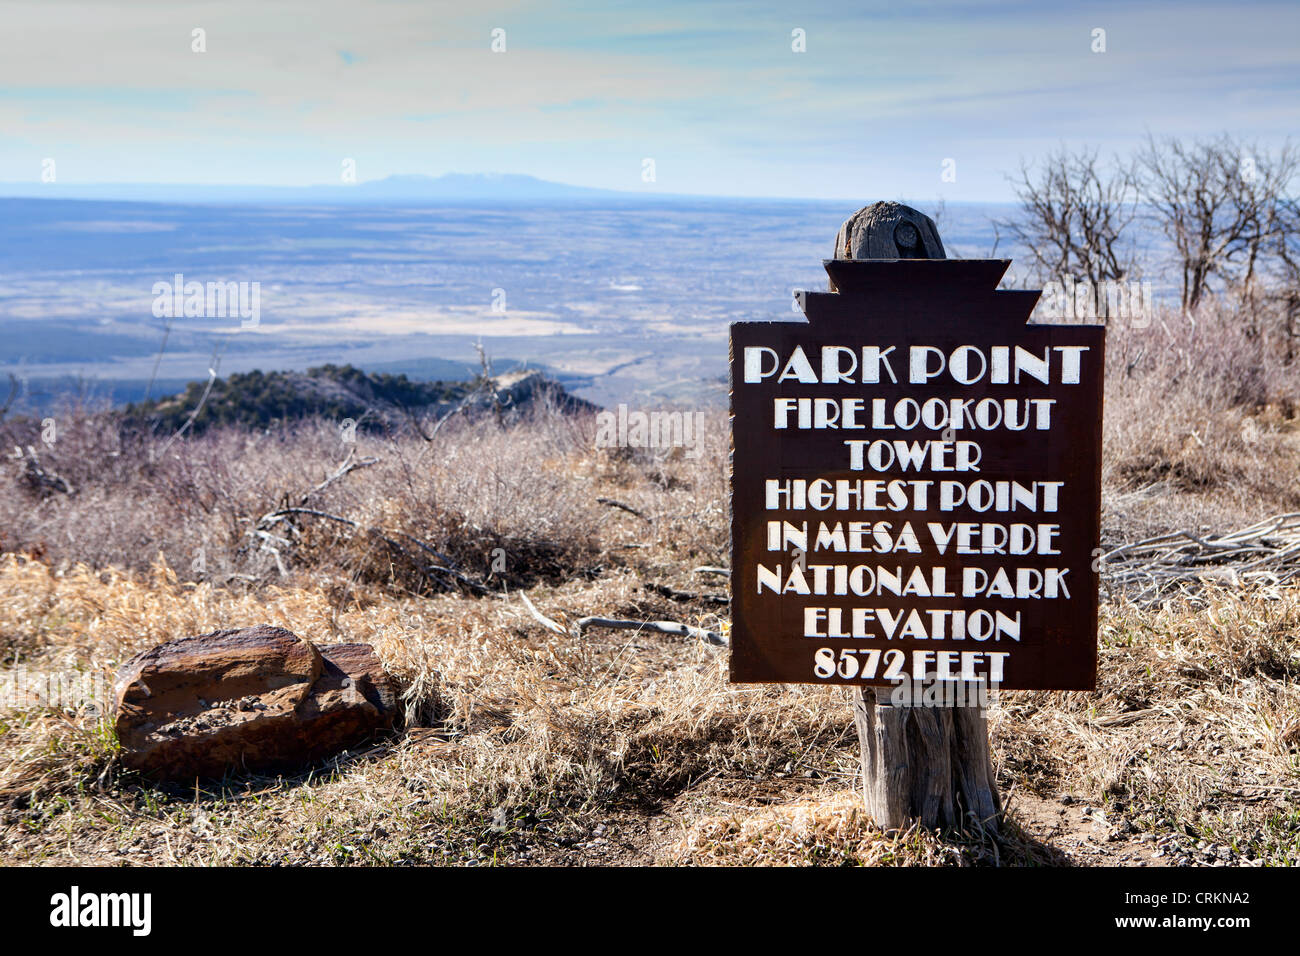 Mesa Verde National Park, Colorado, Park Point Fire lookout tower marker sign - Stock Image